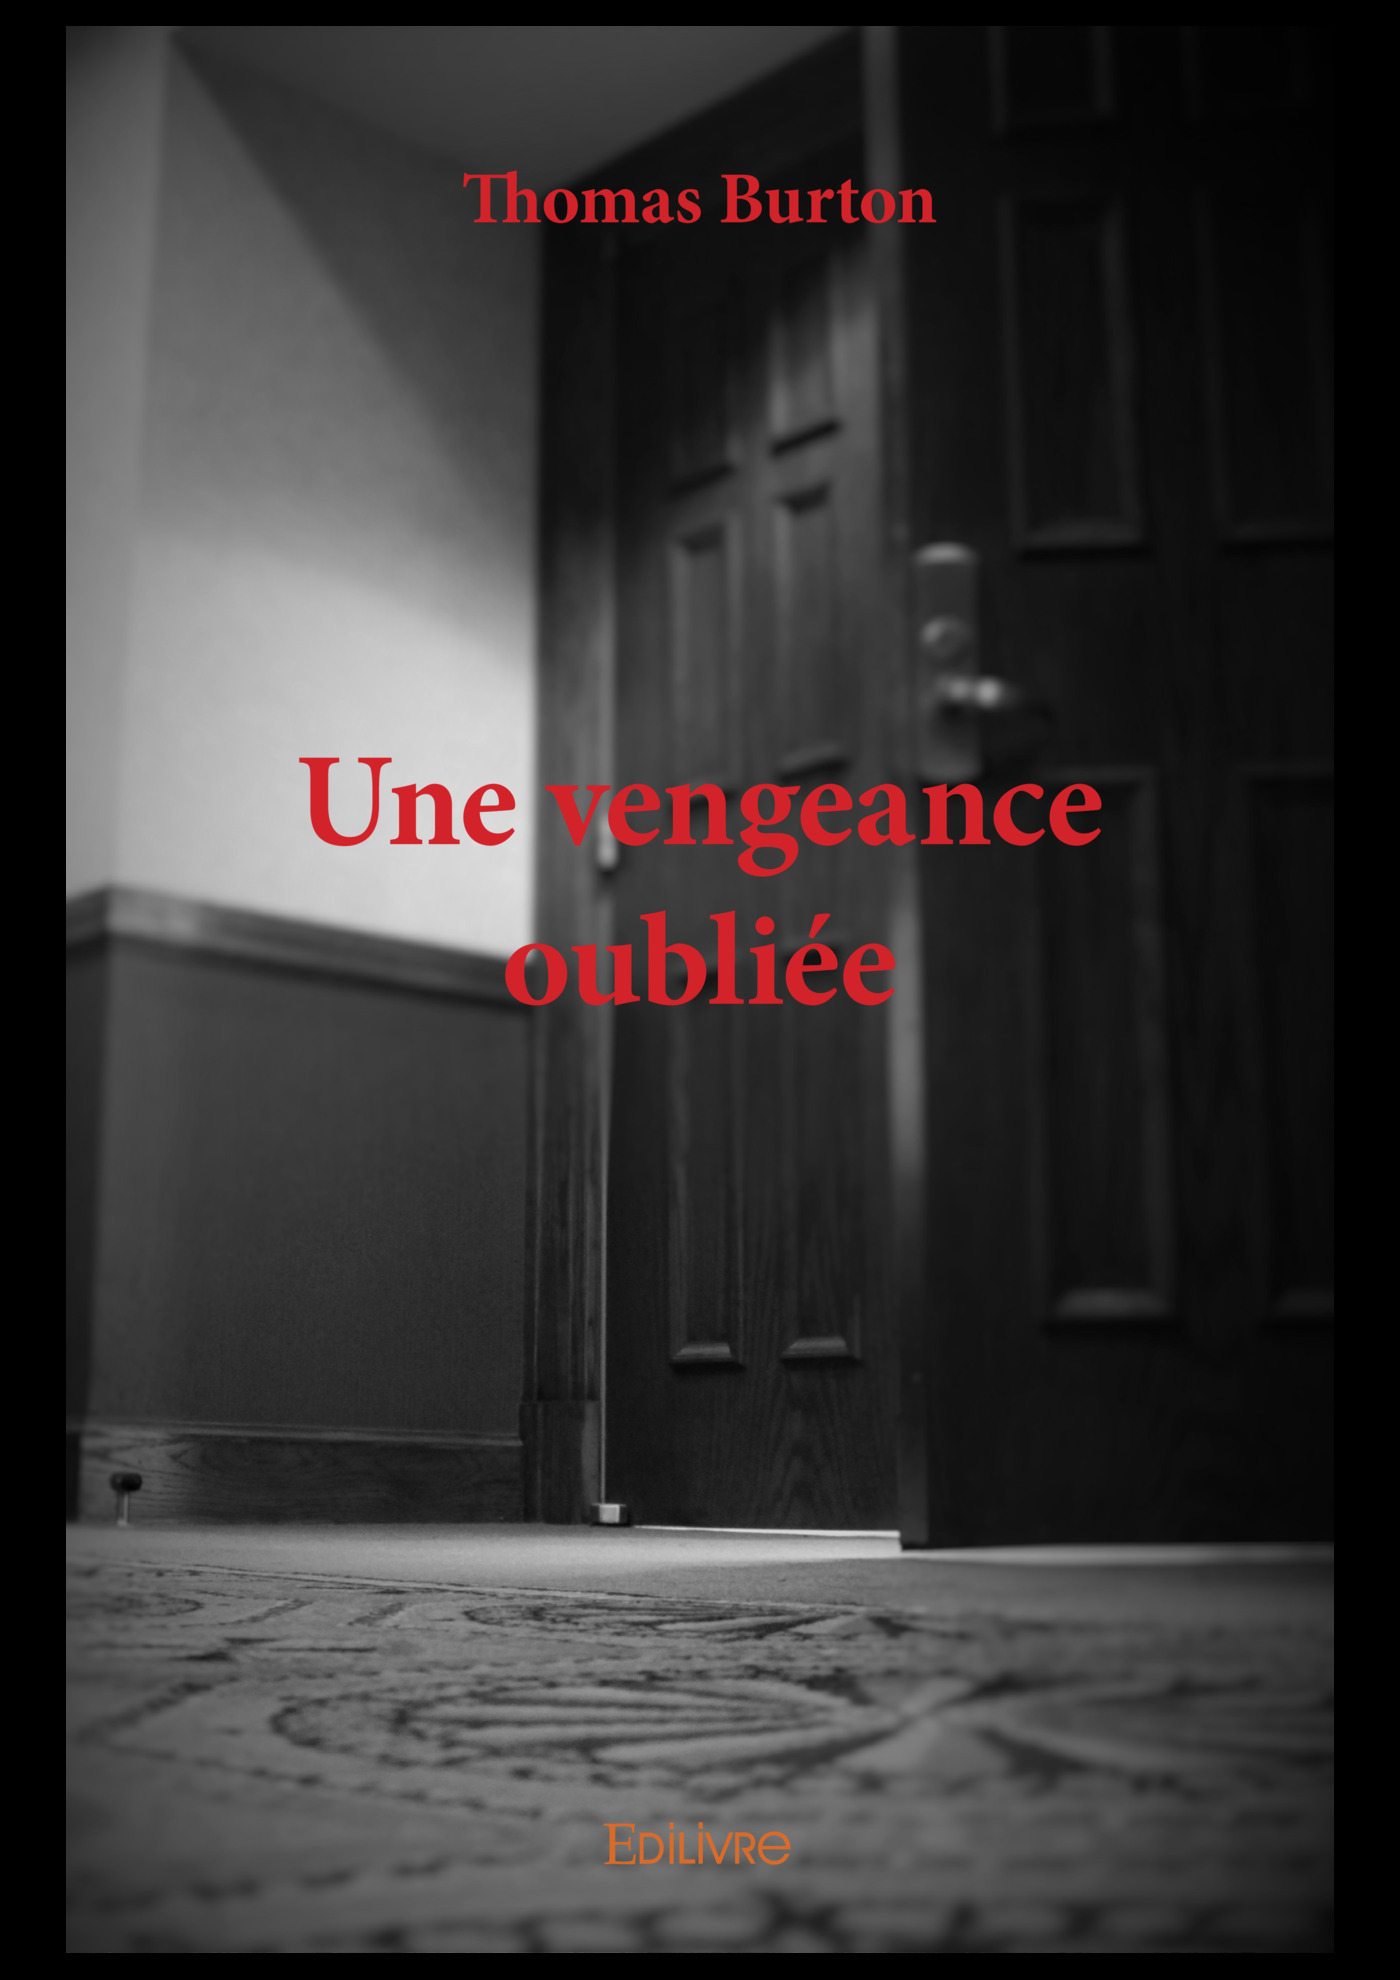 Une vengeance oubliee